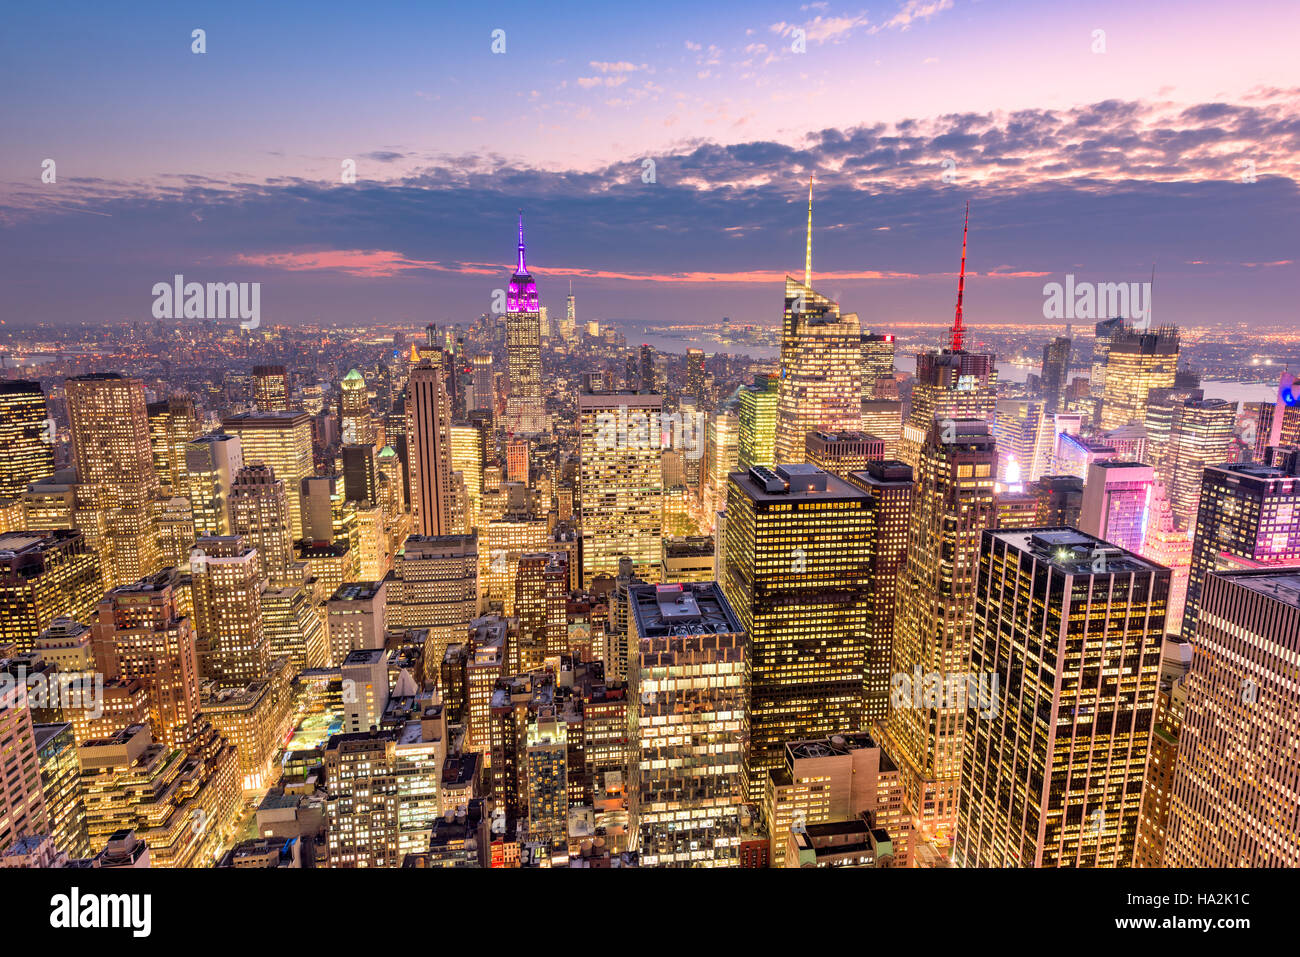 New York City aerial skyline view over midtown Manhattan. - Stock Image